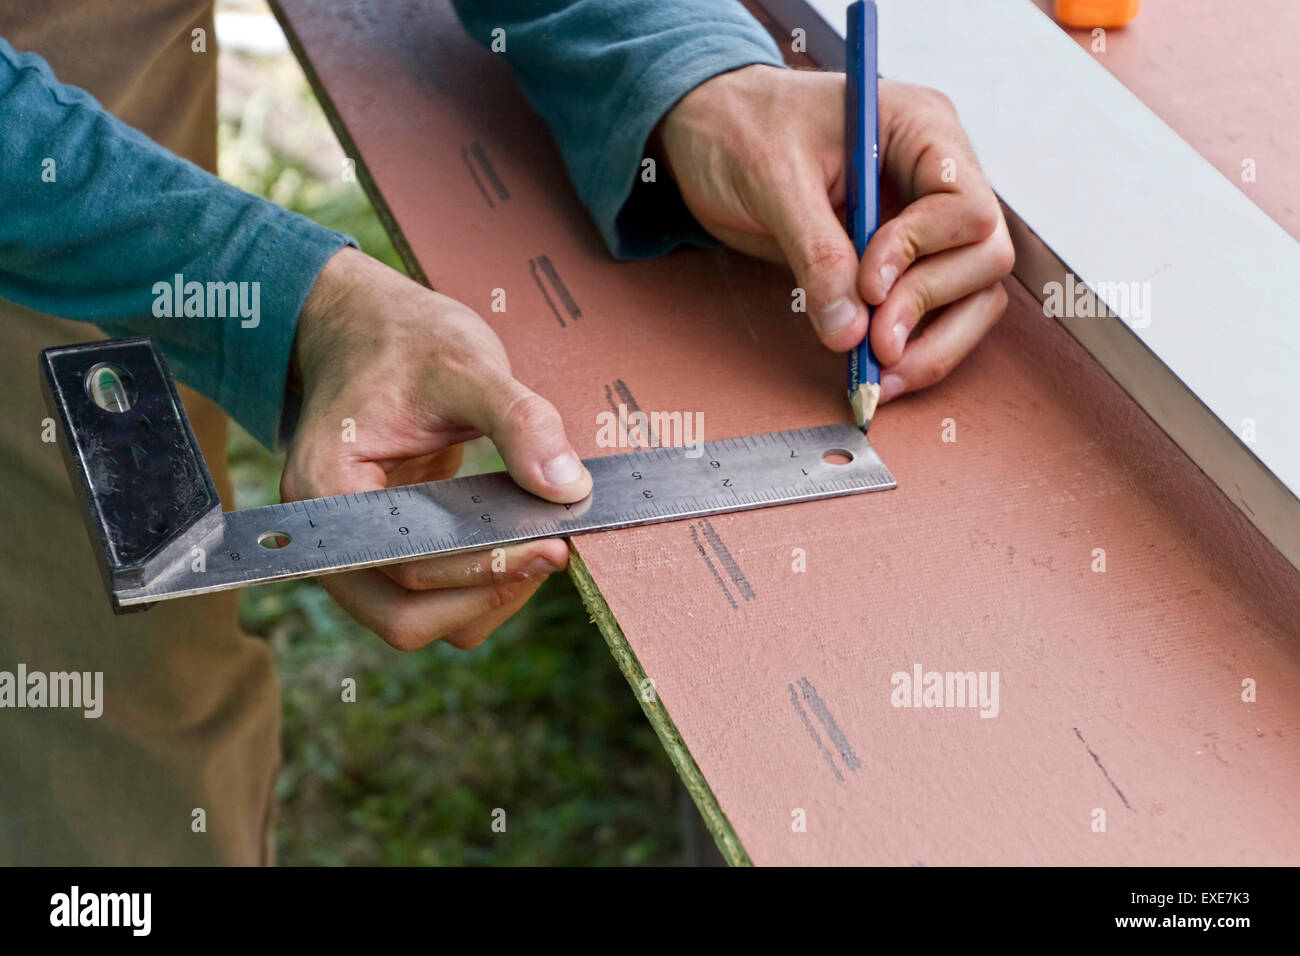 Close up of a young man's hands using a metal ruler with level to mark construction measurements on a piece - Stock Image